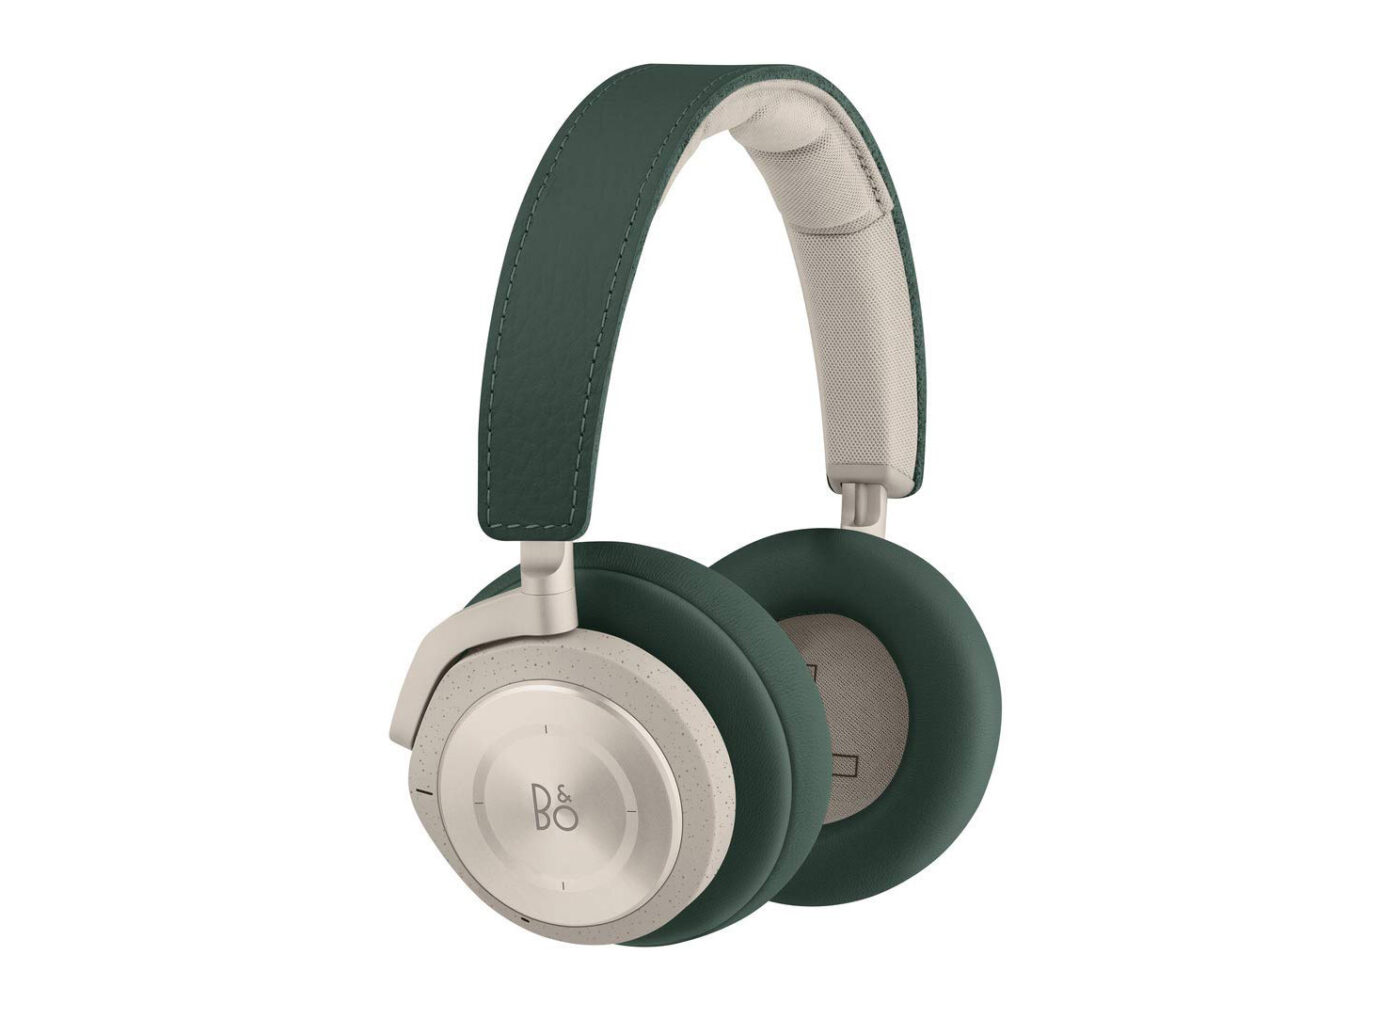 Bang & Olufsen Beoplay H9i Wireless Noise-Canceling Headphones